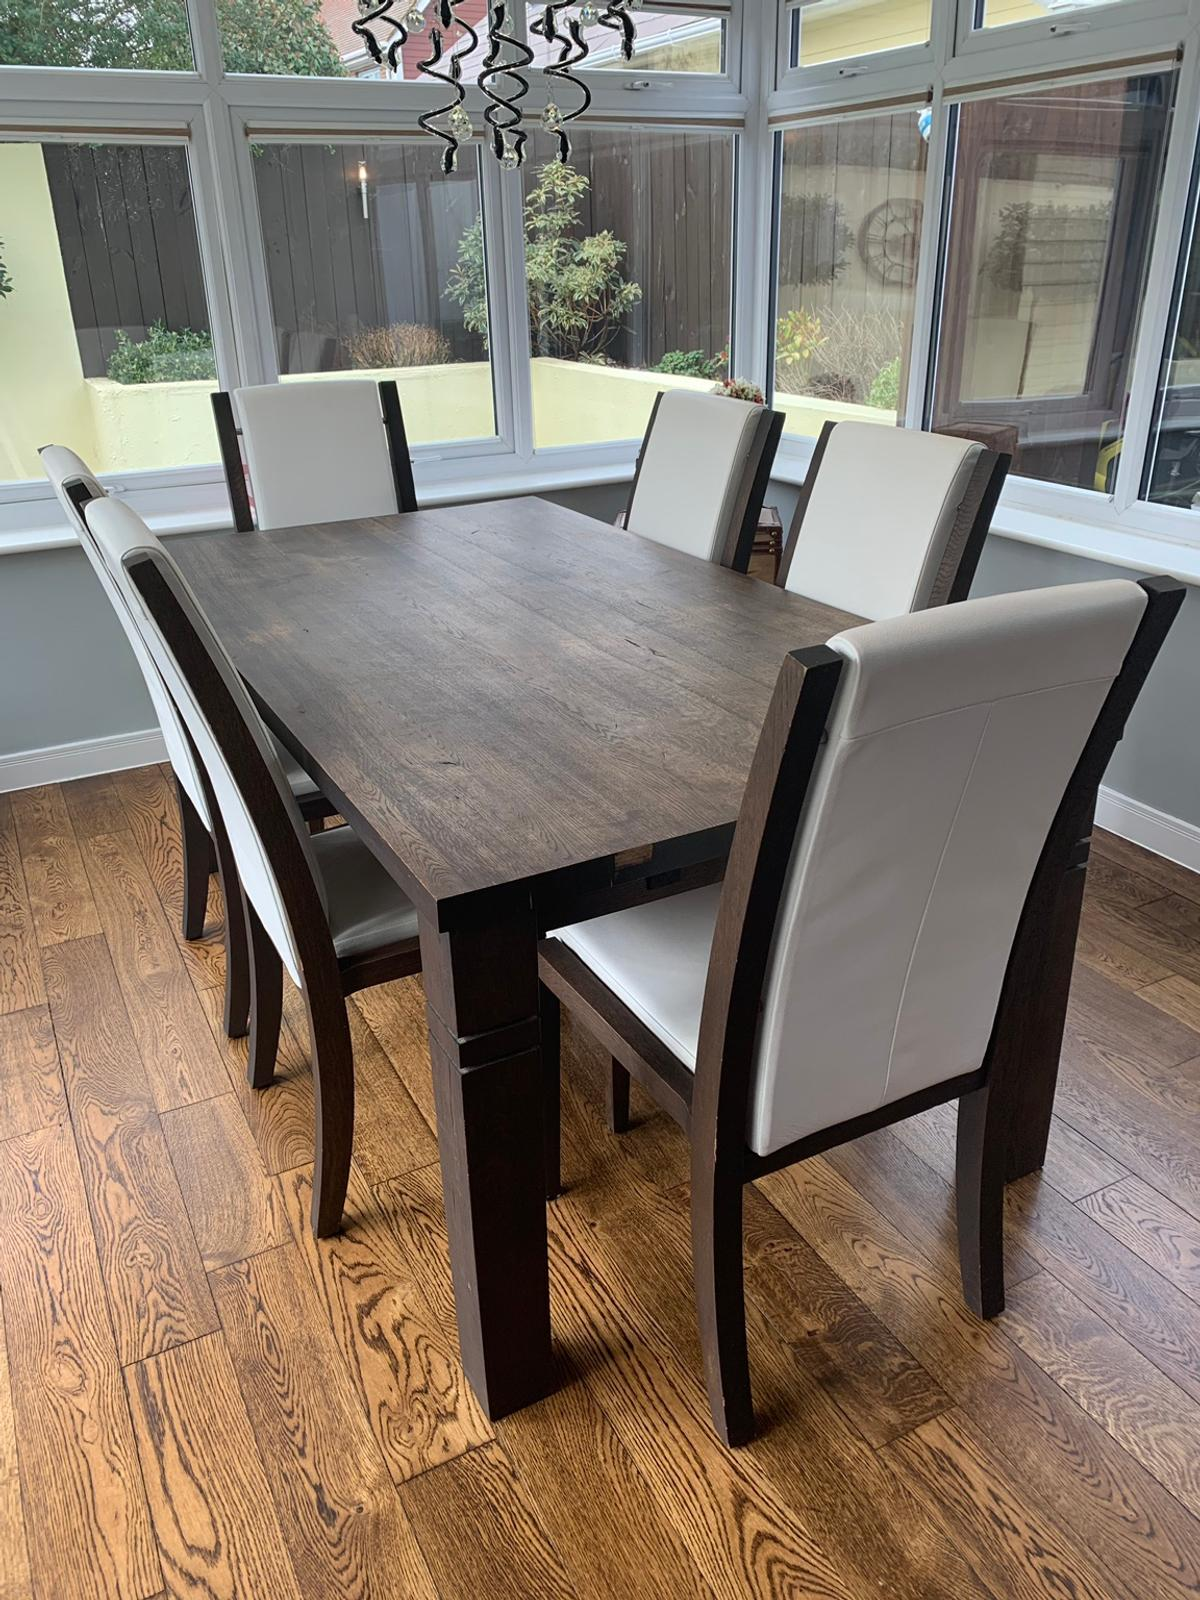 Astounding Solid Wooden 6 Seater Dining Table And Chairs Gmtry Best Dining Table And Chair Ideas Images Gmtryco